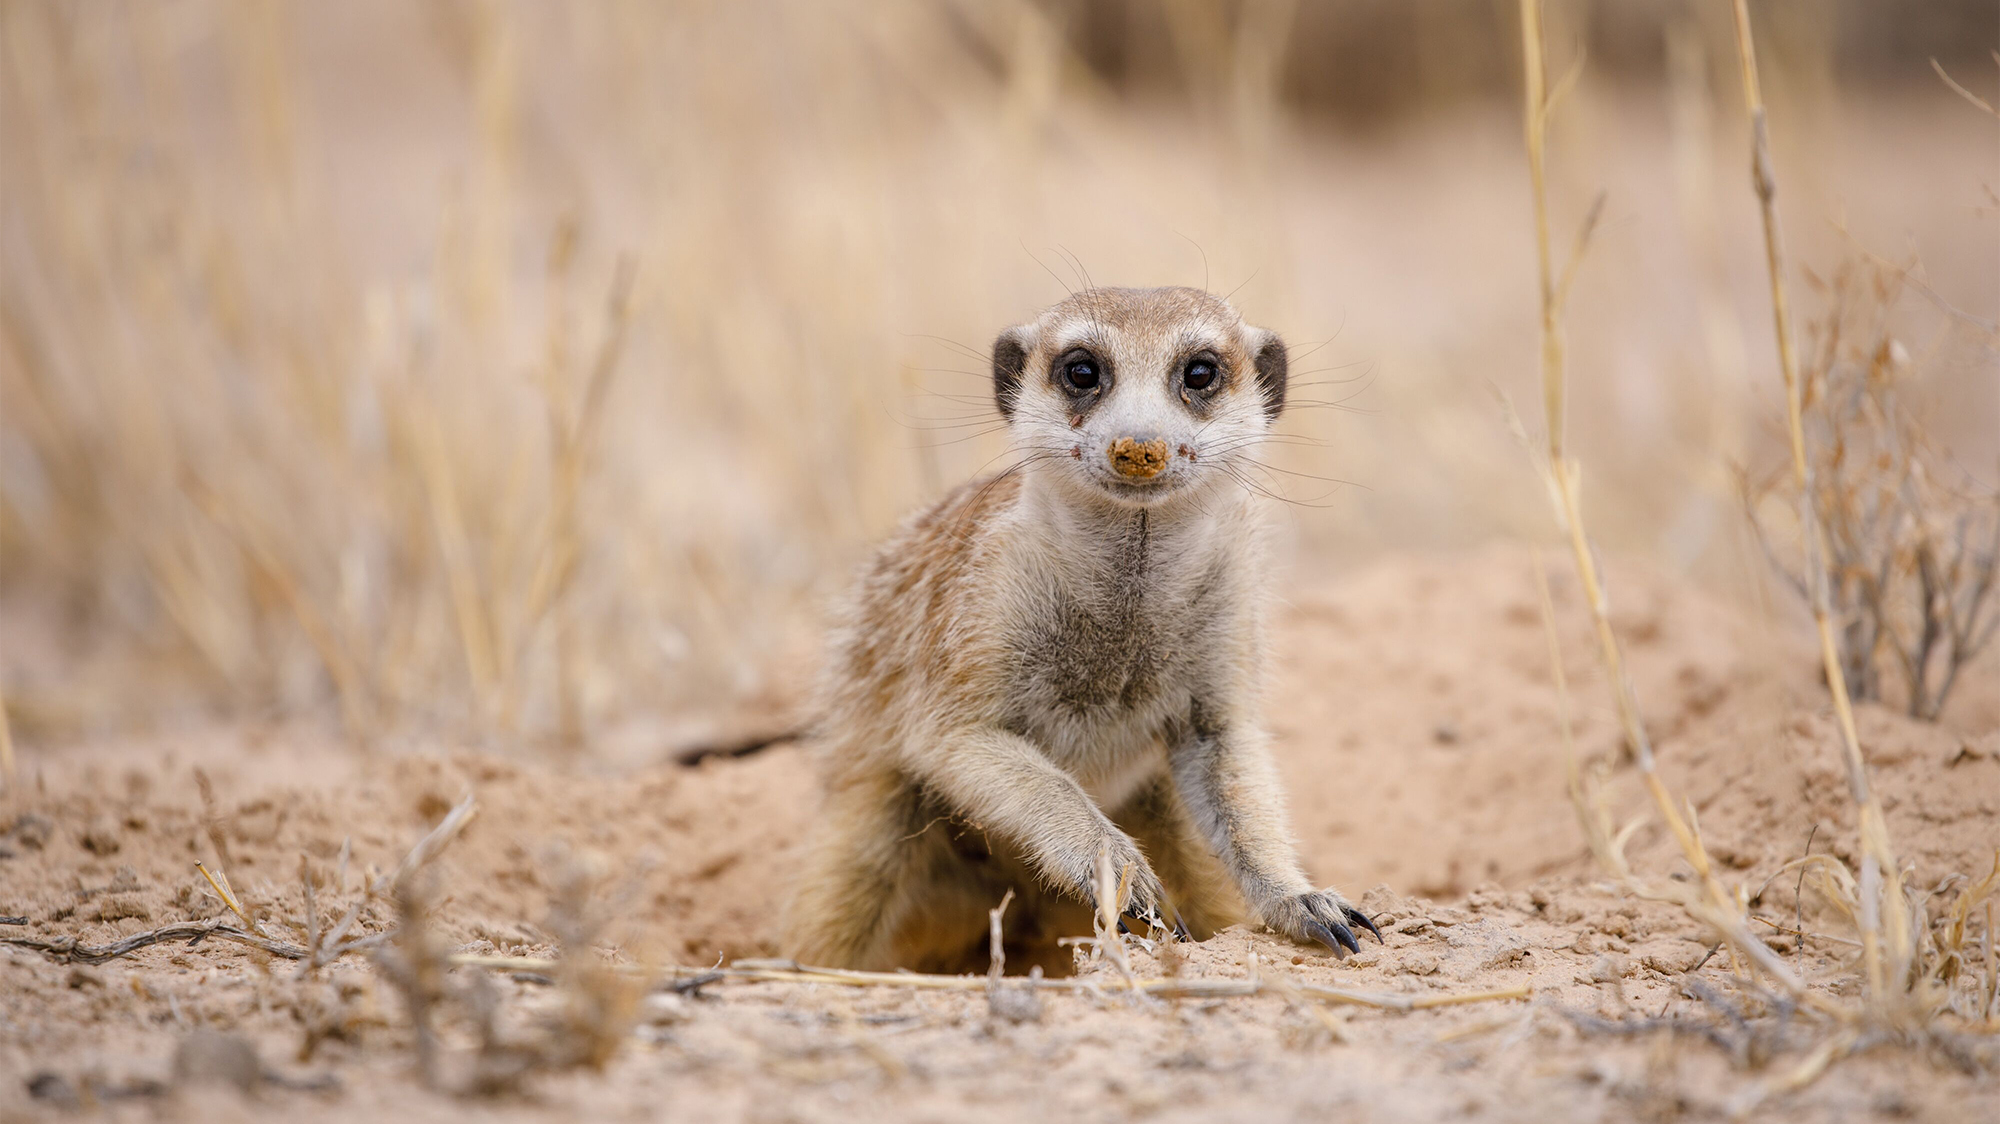 The Kalahari Meerkat Project collected detailed monthly life-history data between 1997 and 2016.